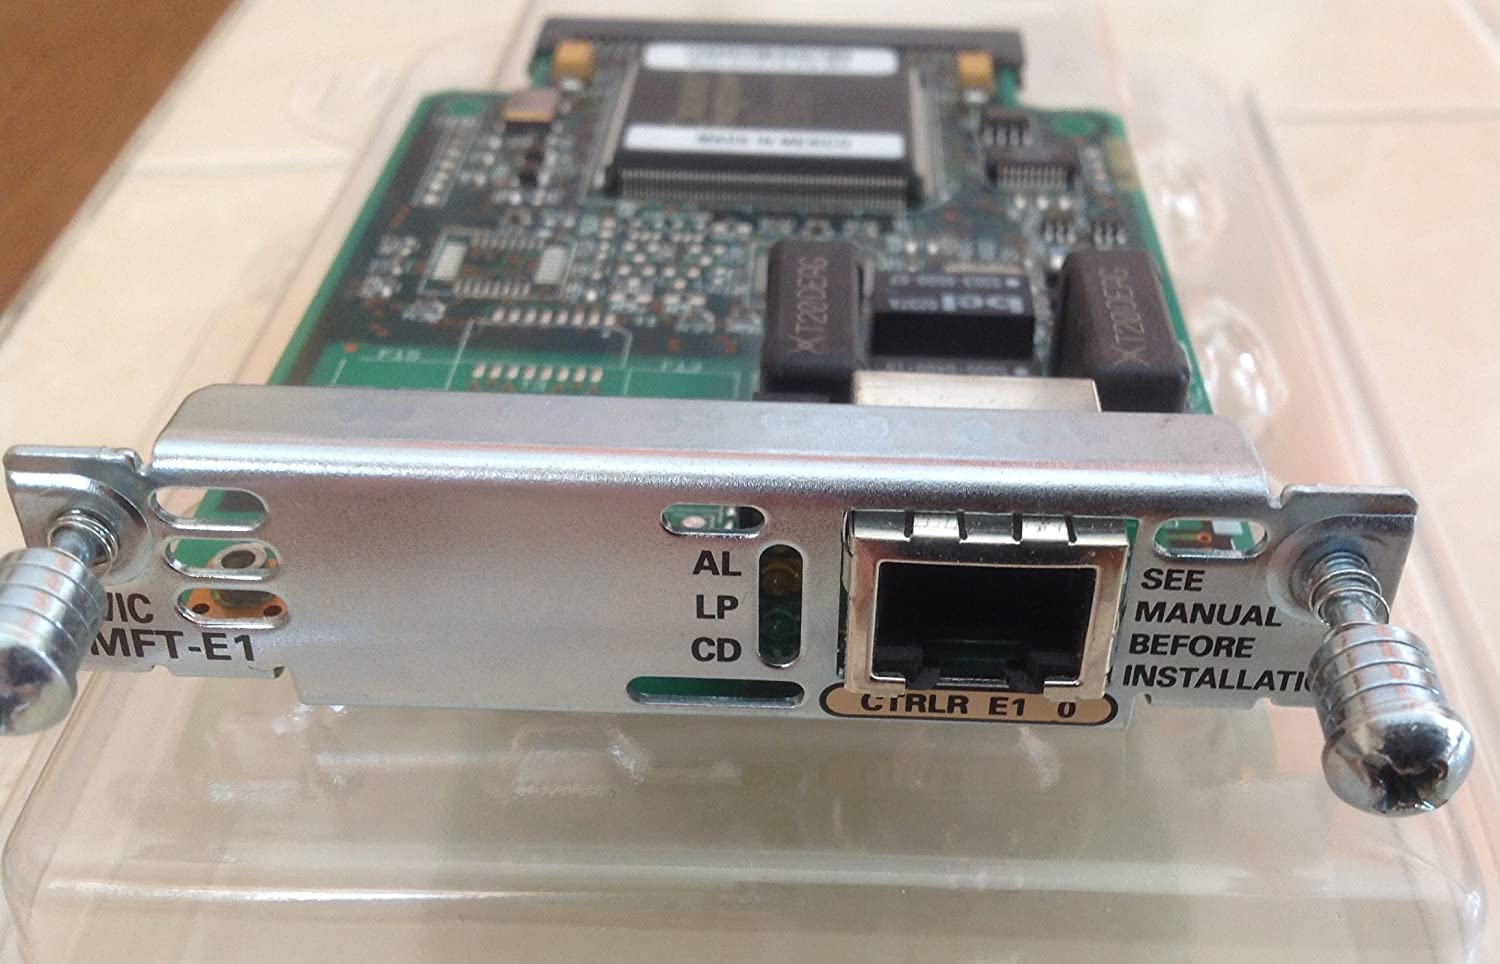 Cisco  VWIC-1MFT-E1 1-PORT RJ-48 Multiflex Trunk Card